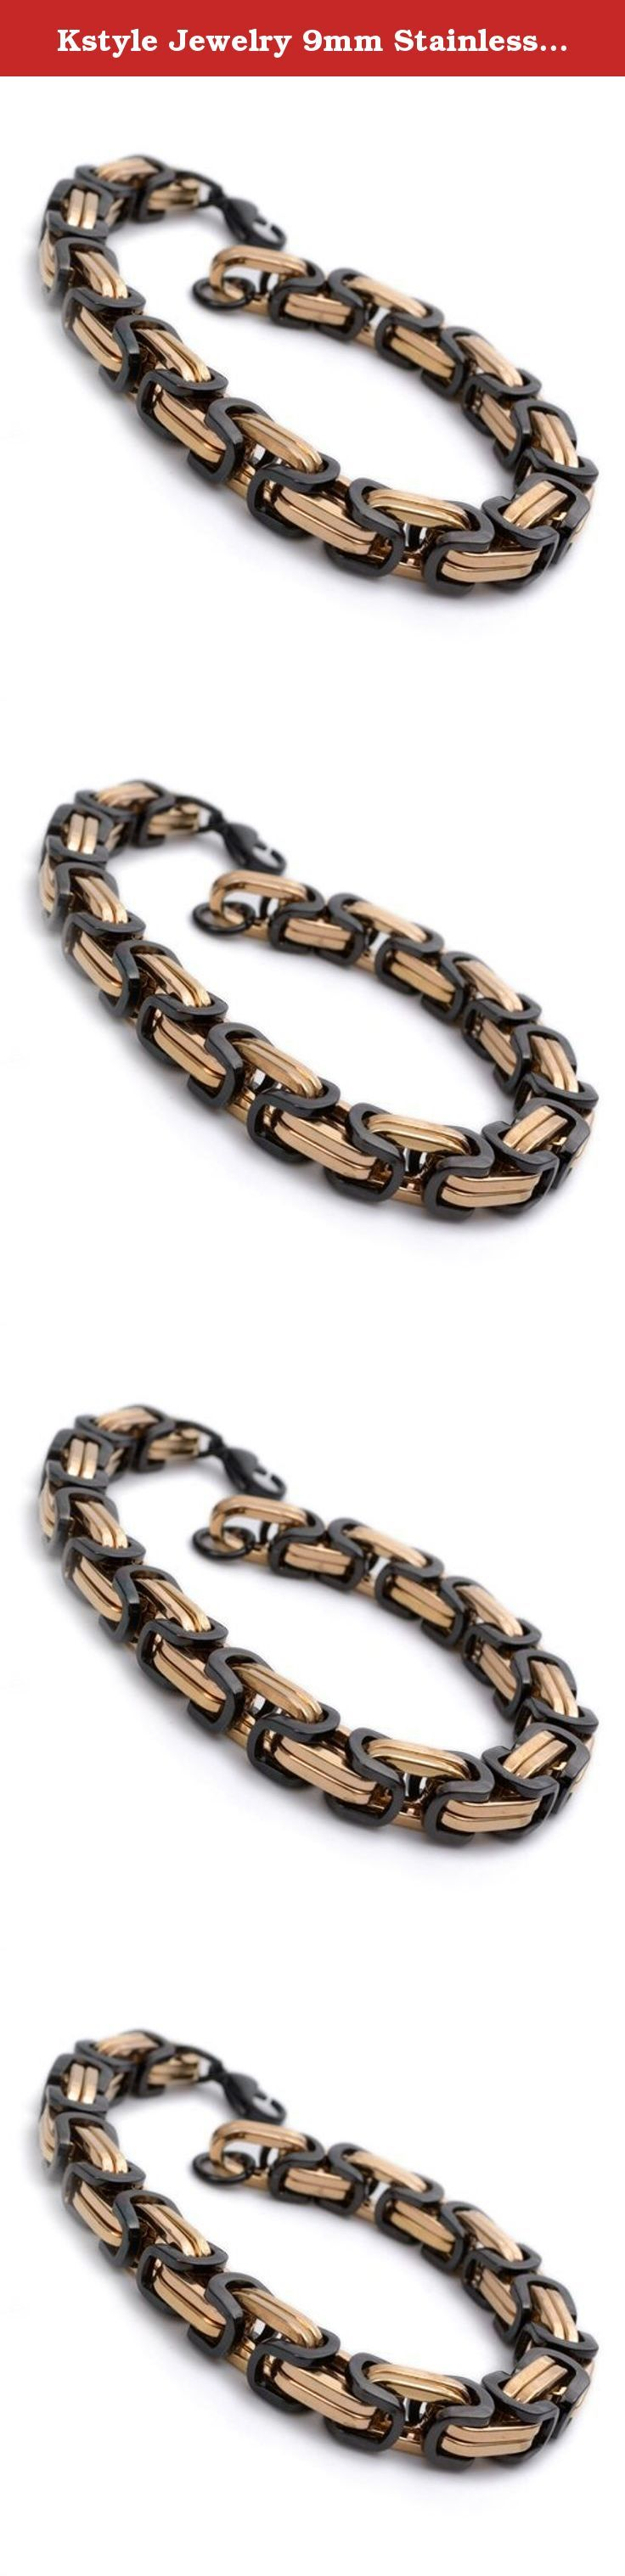 "Kstyle Jewelry 9mm Stainless Steel Rose Gold & Black Cool Mens Bracelet 9.1"" B780. Metal: stainless-steel. L: 9"" W: 9mm. 30 Days Money Back Guaranteed. Come With Gift Bag."